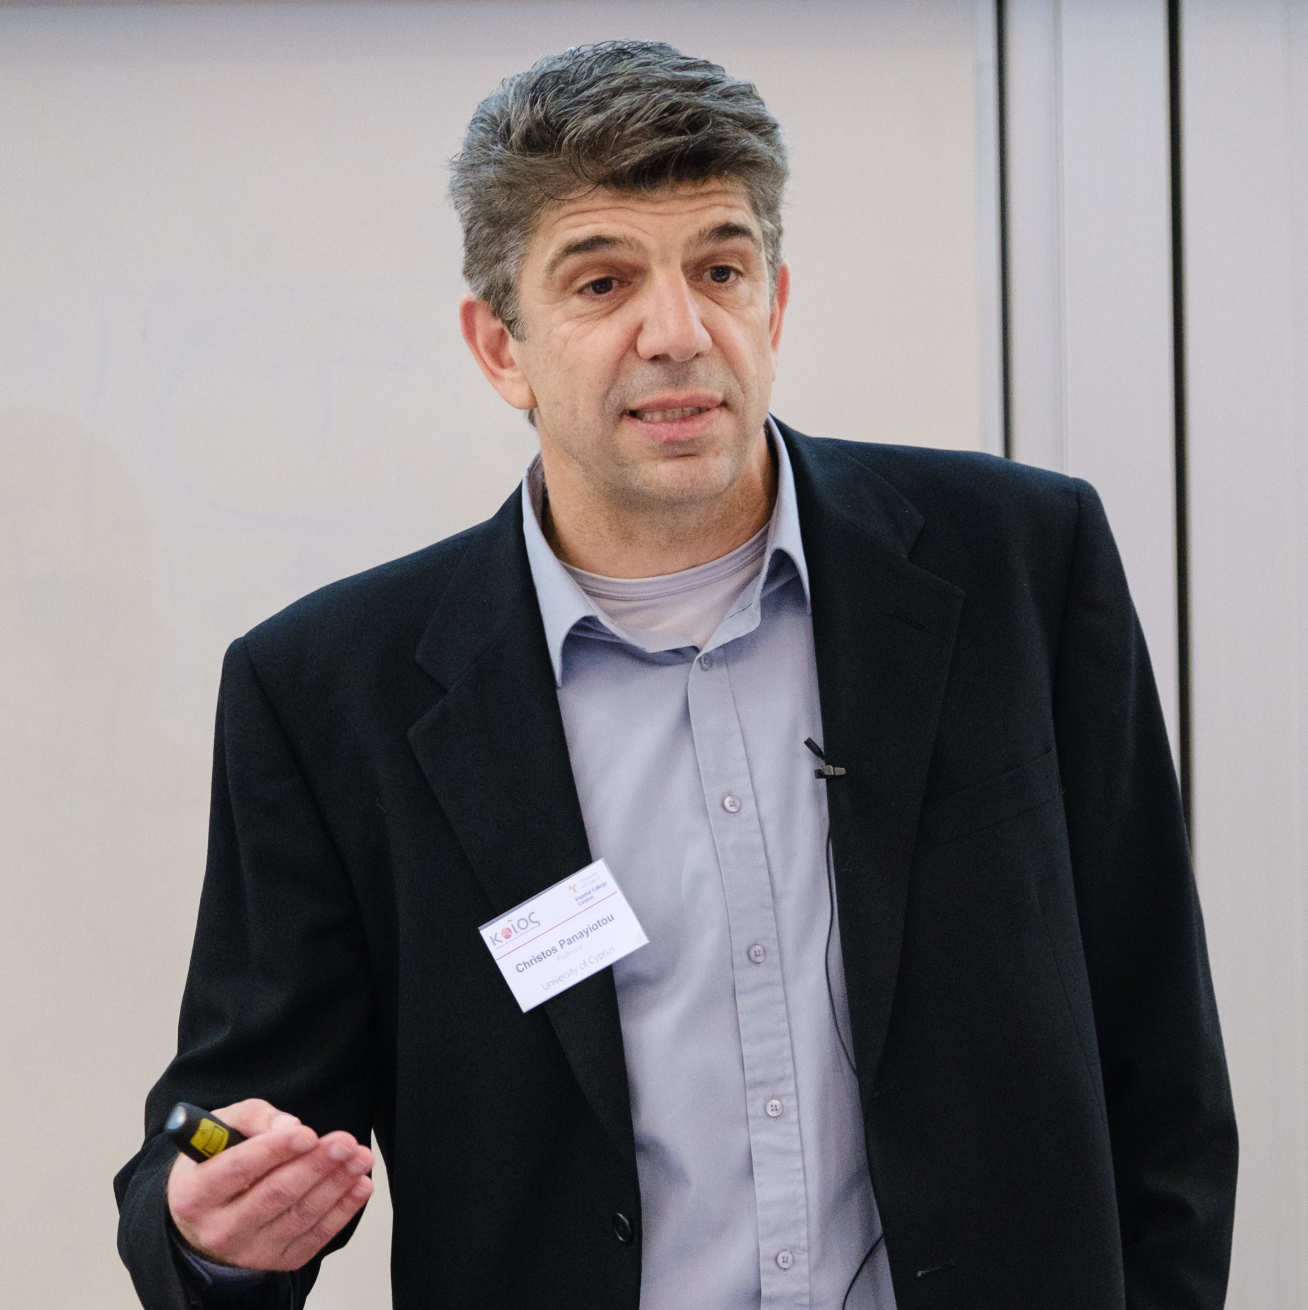 Professor Christos Panayiotou, from the University of Cyprus